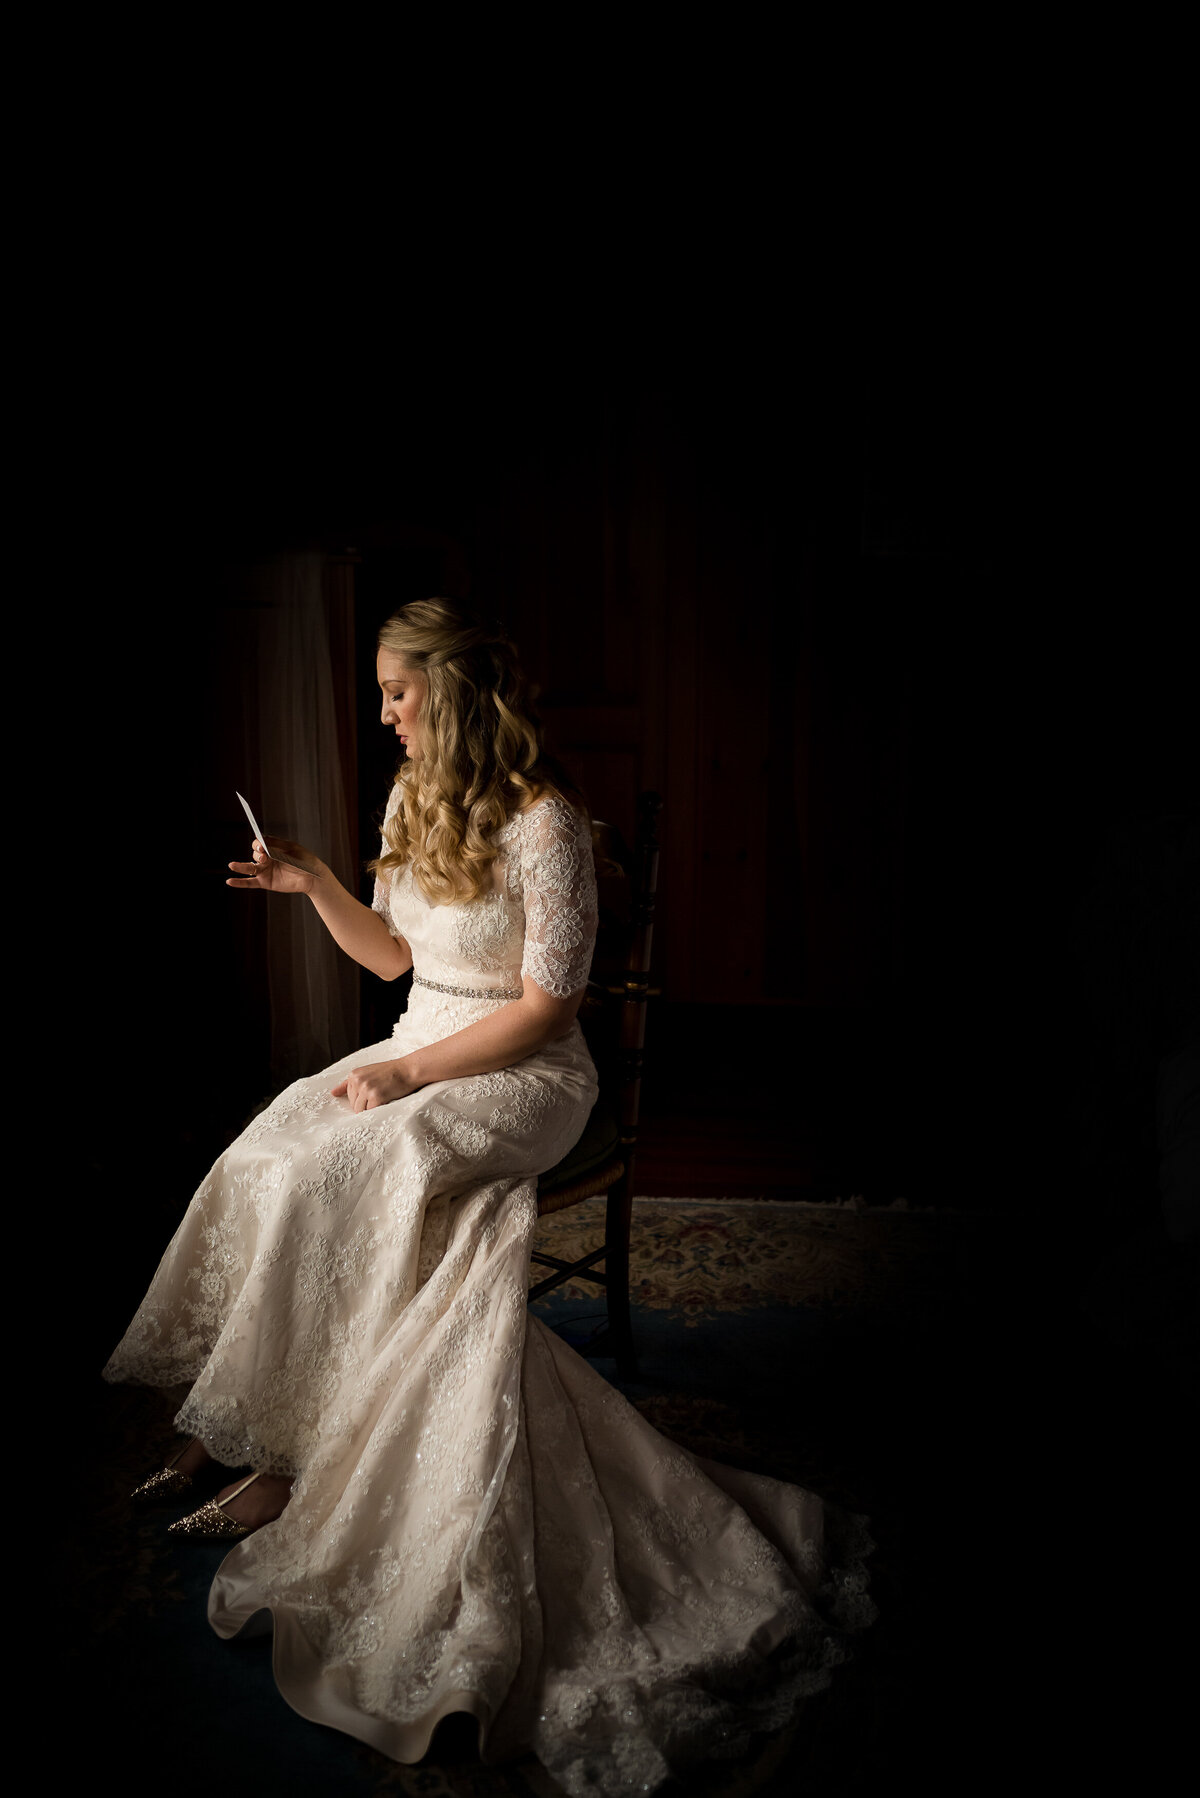 bride reading a letter from her groom before wedding ceremony